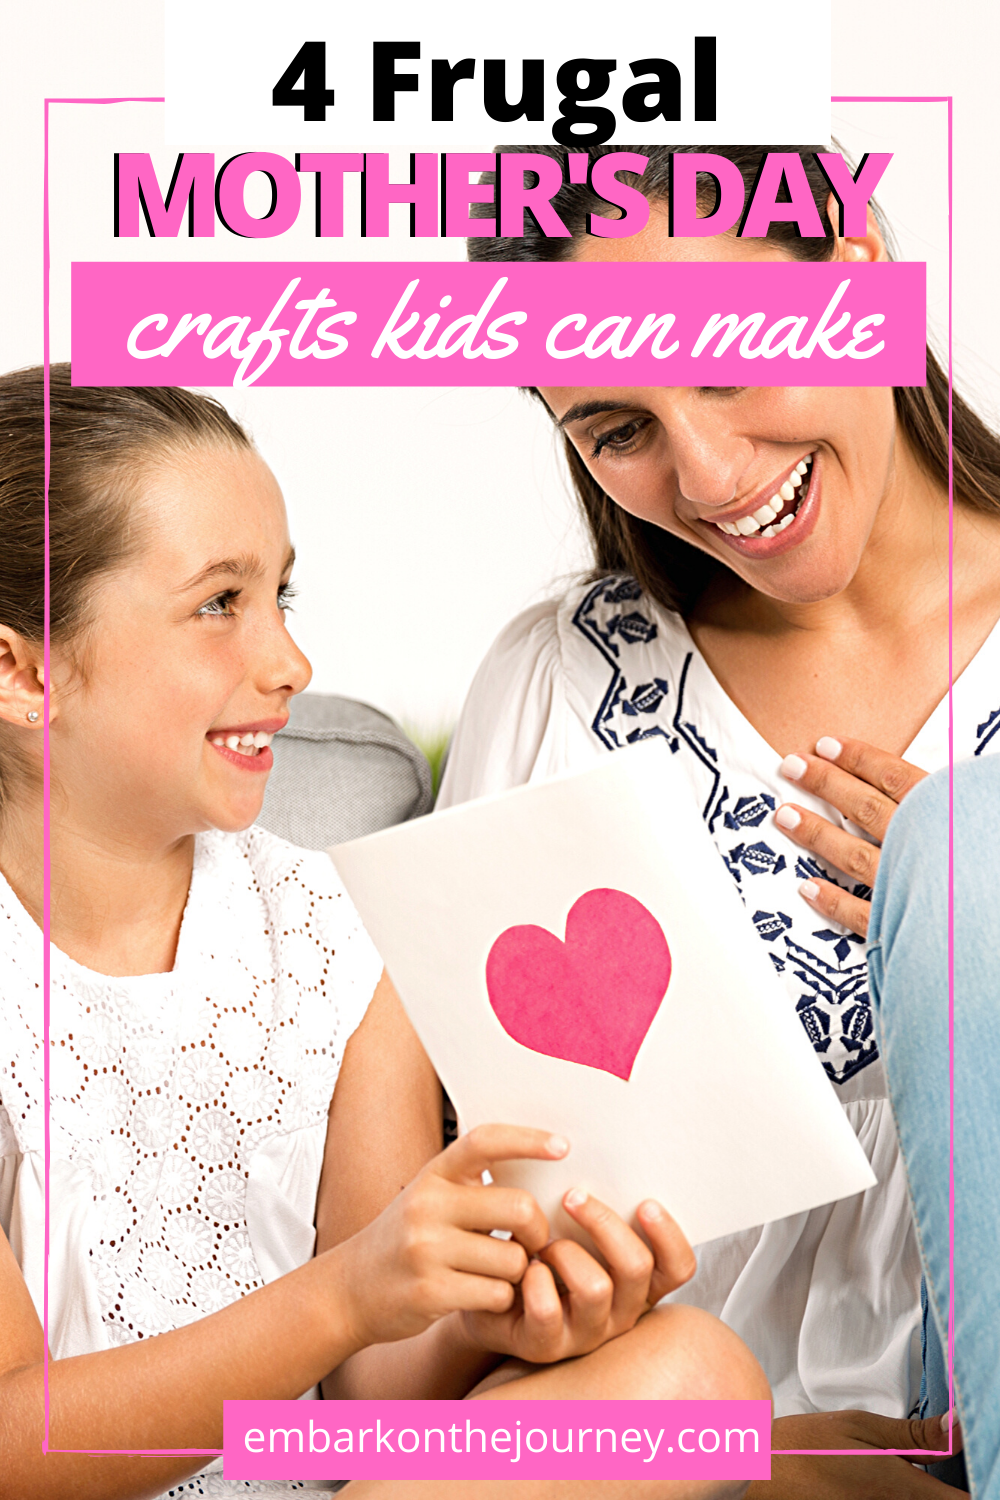 On Mother's Day, kids want to show mom just how special she is. Here are some frugal options for Mother's Day craft ideas kids can make! #mothersdaygifts #mothersdaycraftsforkids #mothersdaycrafts #embarkonthejourney